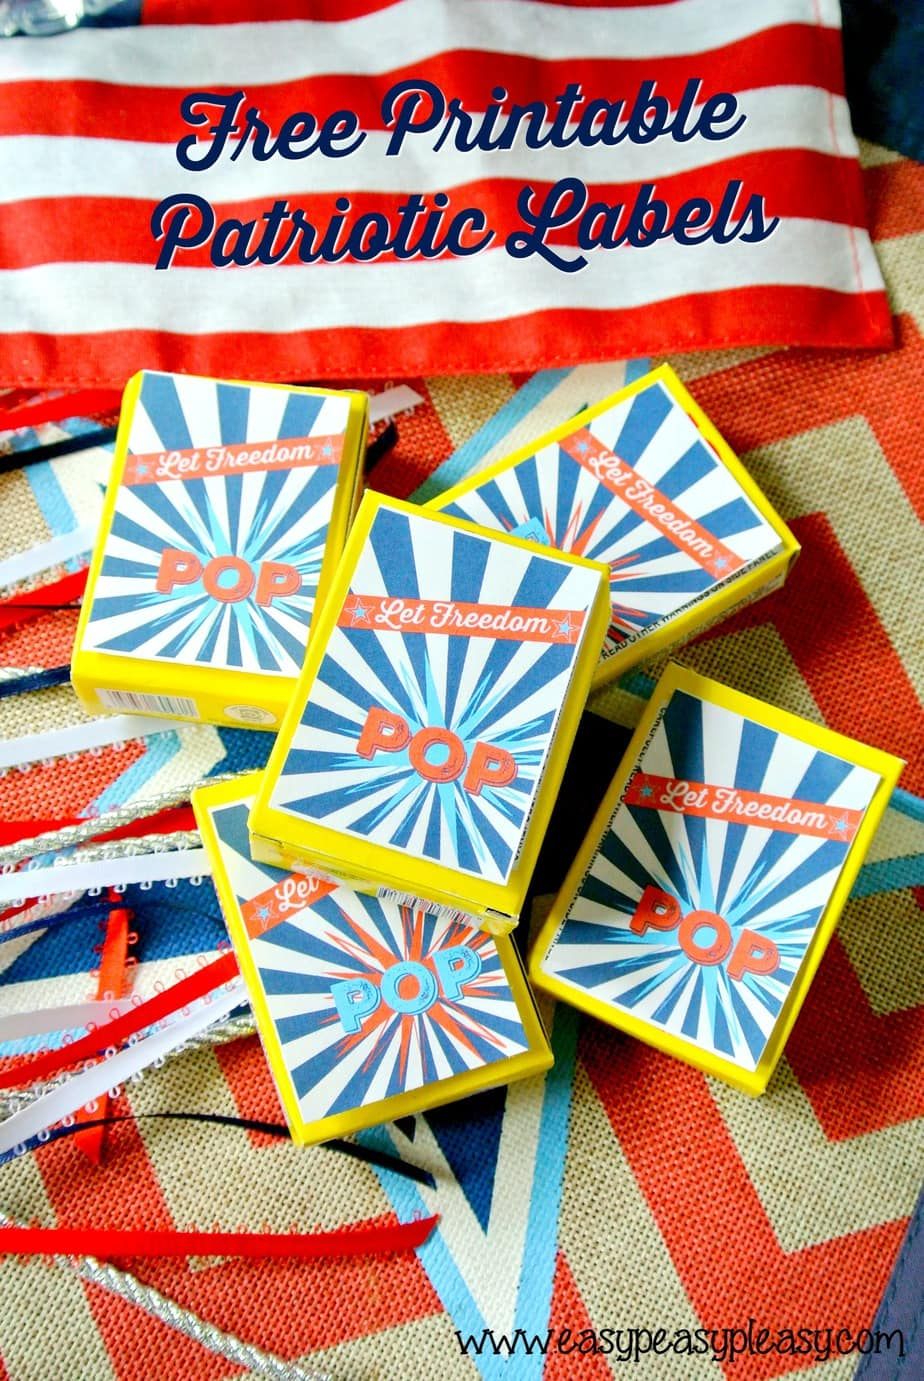 Free Printable Patriotic Pack Labels for treats and snap pops.